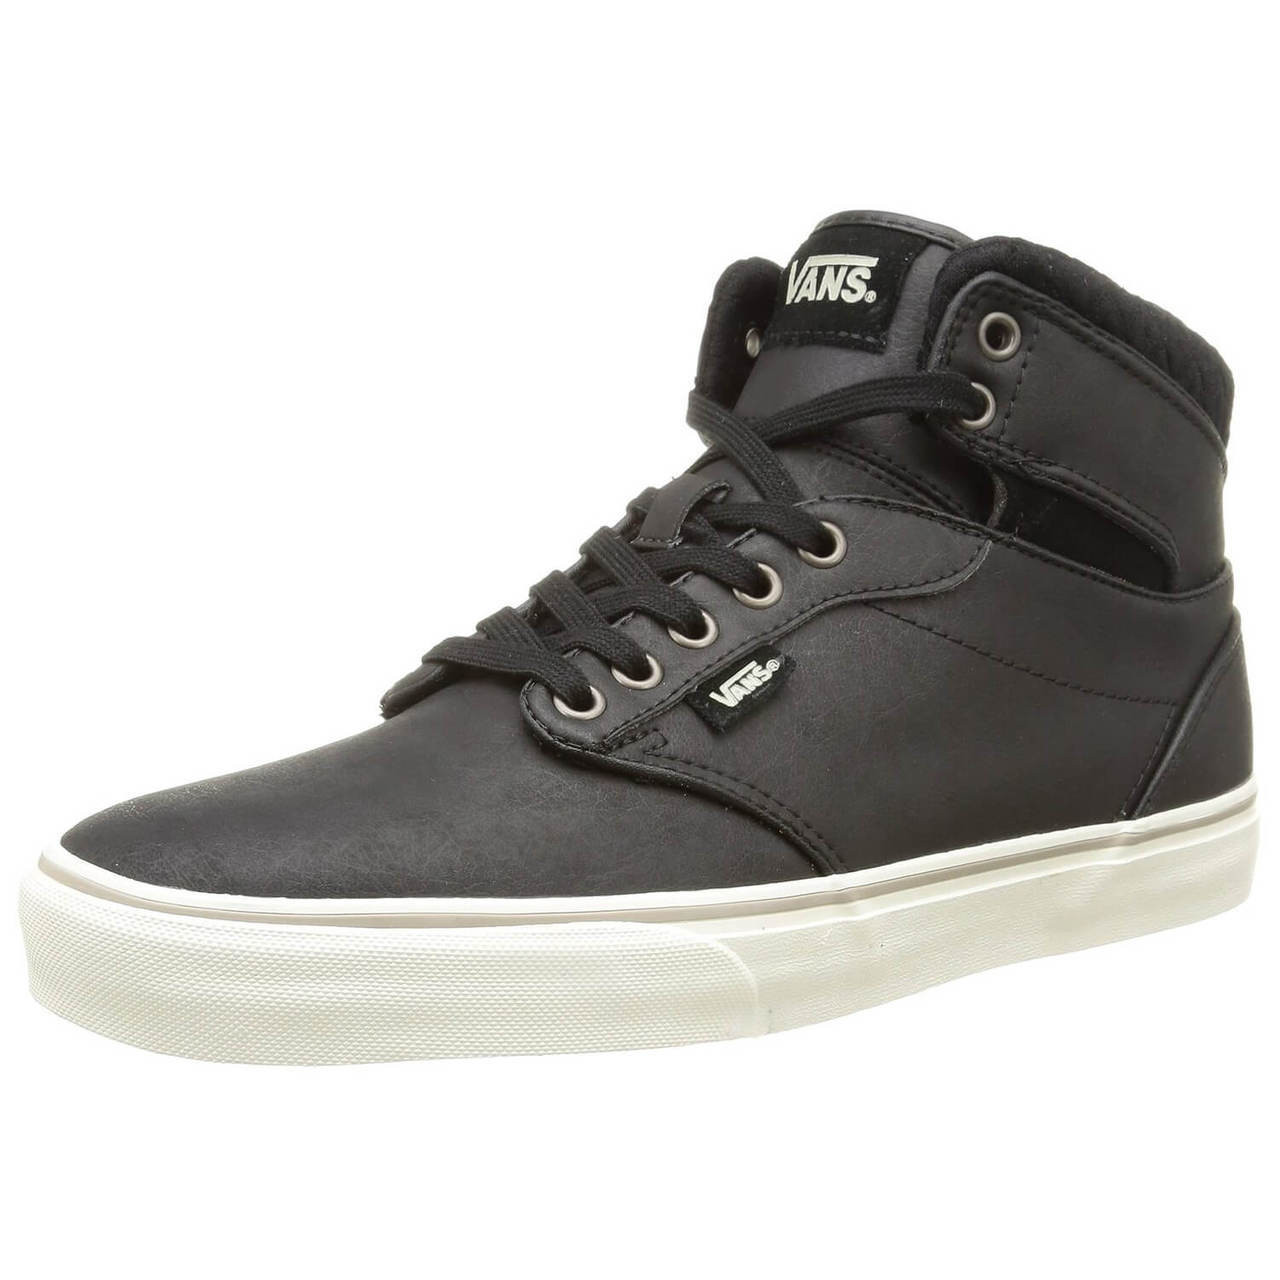 e4301e5fe47 Vans Atwood High Top Leather Shoes Black Image. Double tap to zoom